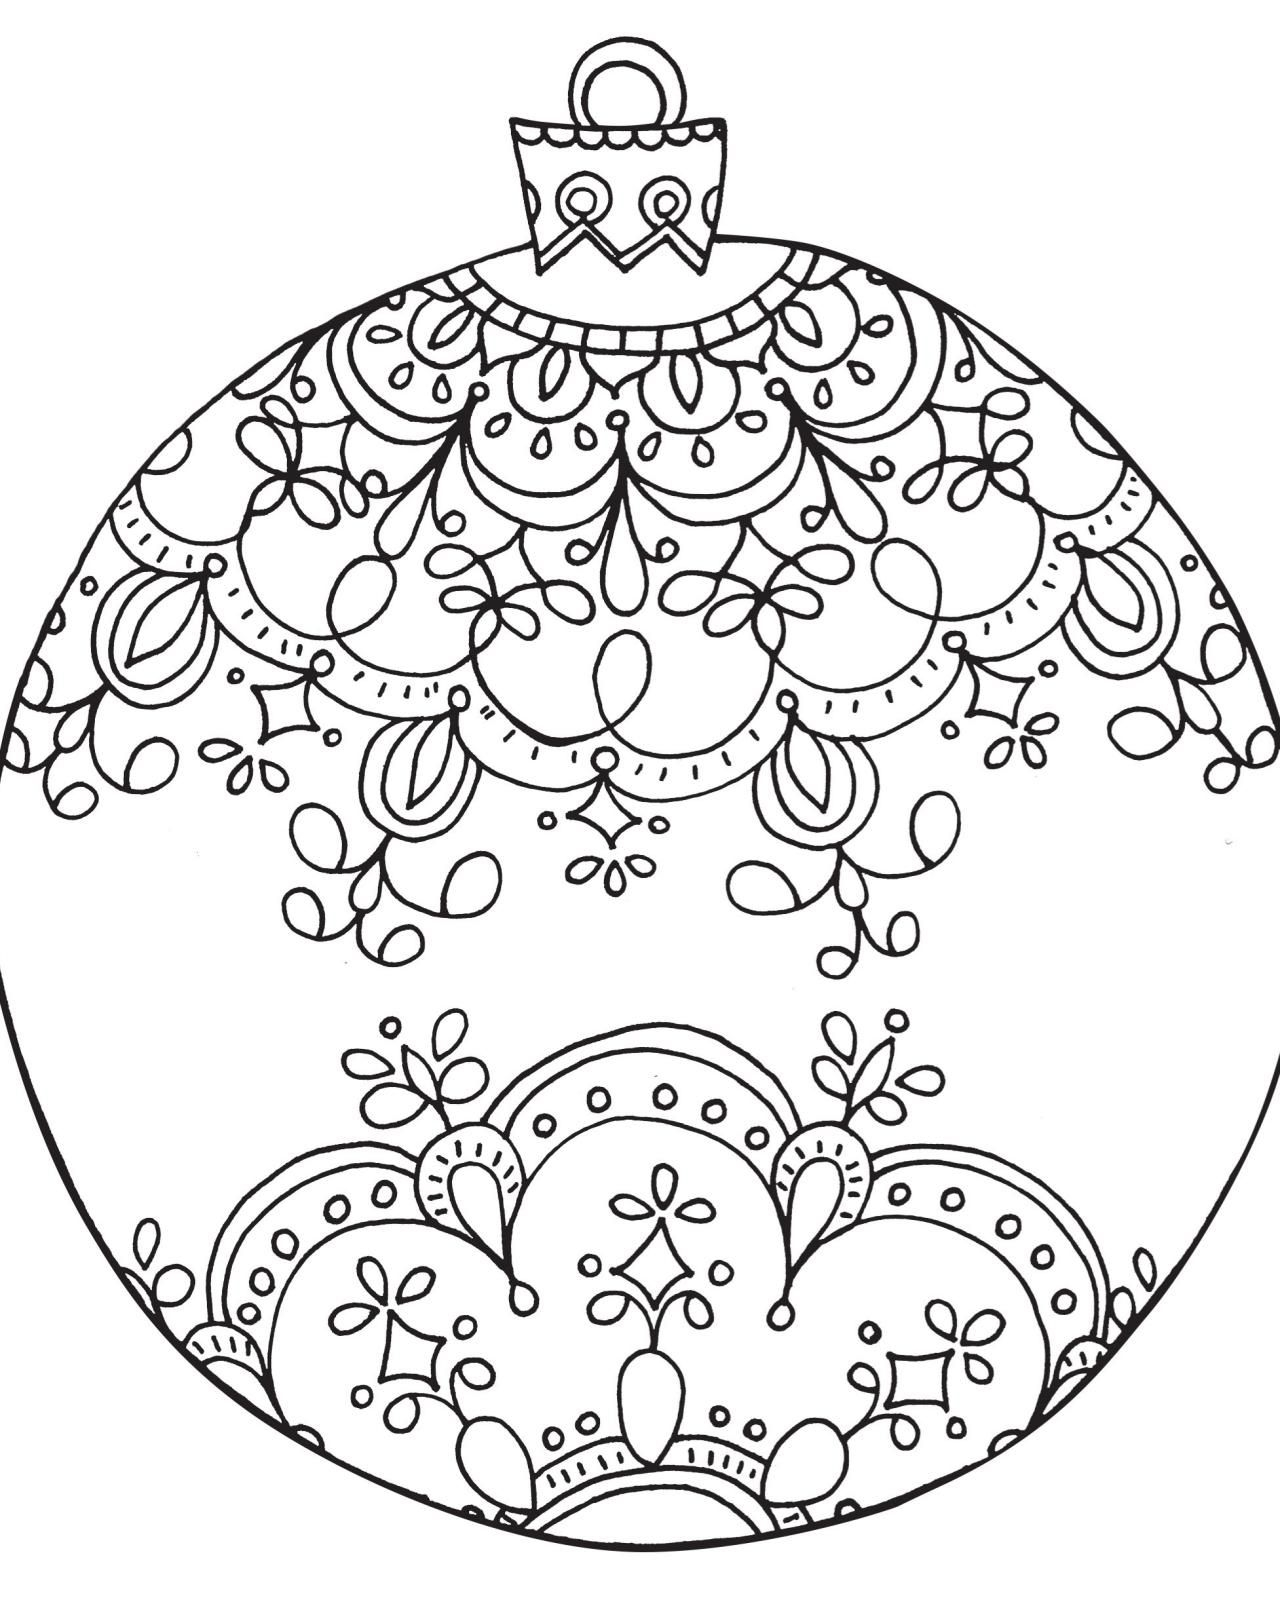 1280x1600 Printable Images Of Printable Hard Geometric Coloring Pages Free